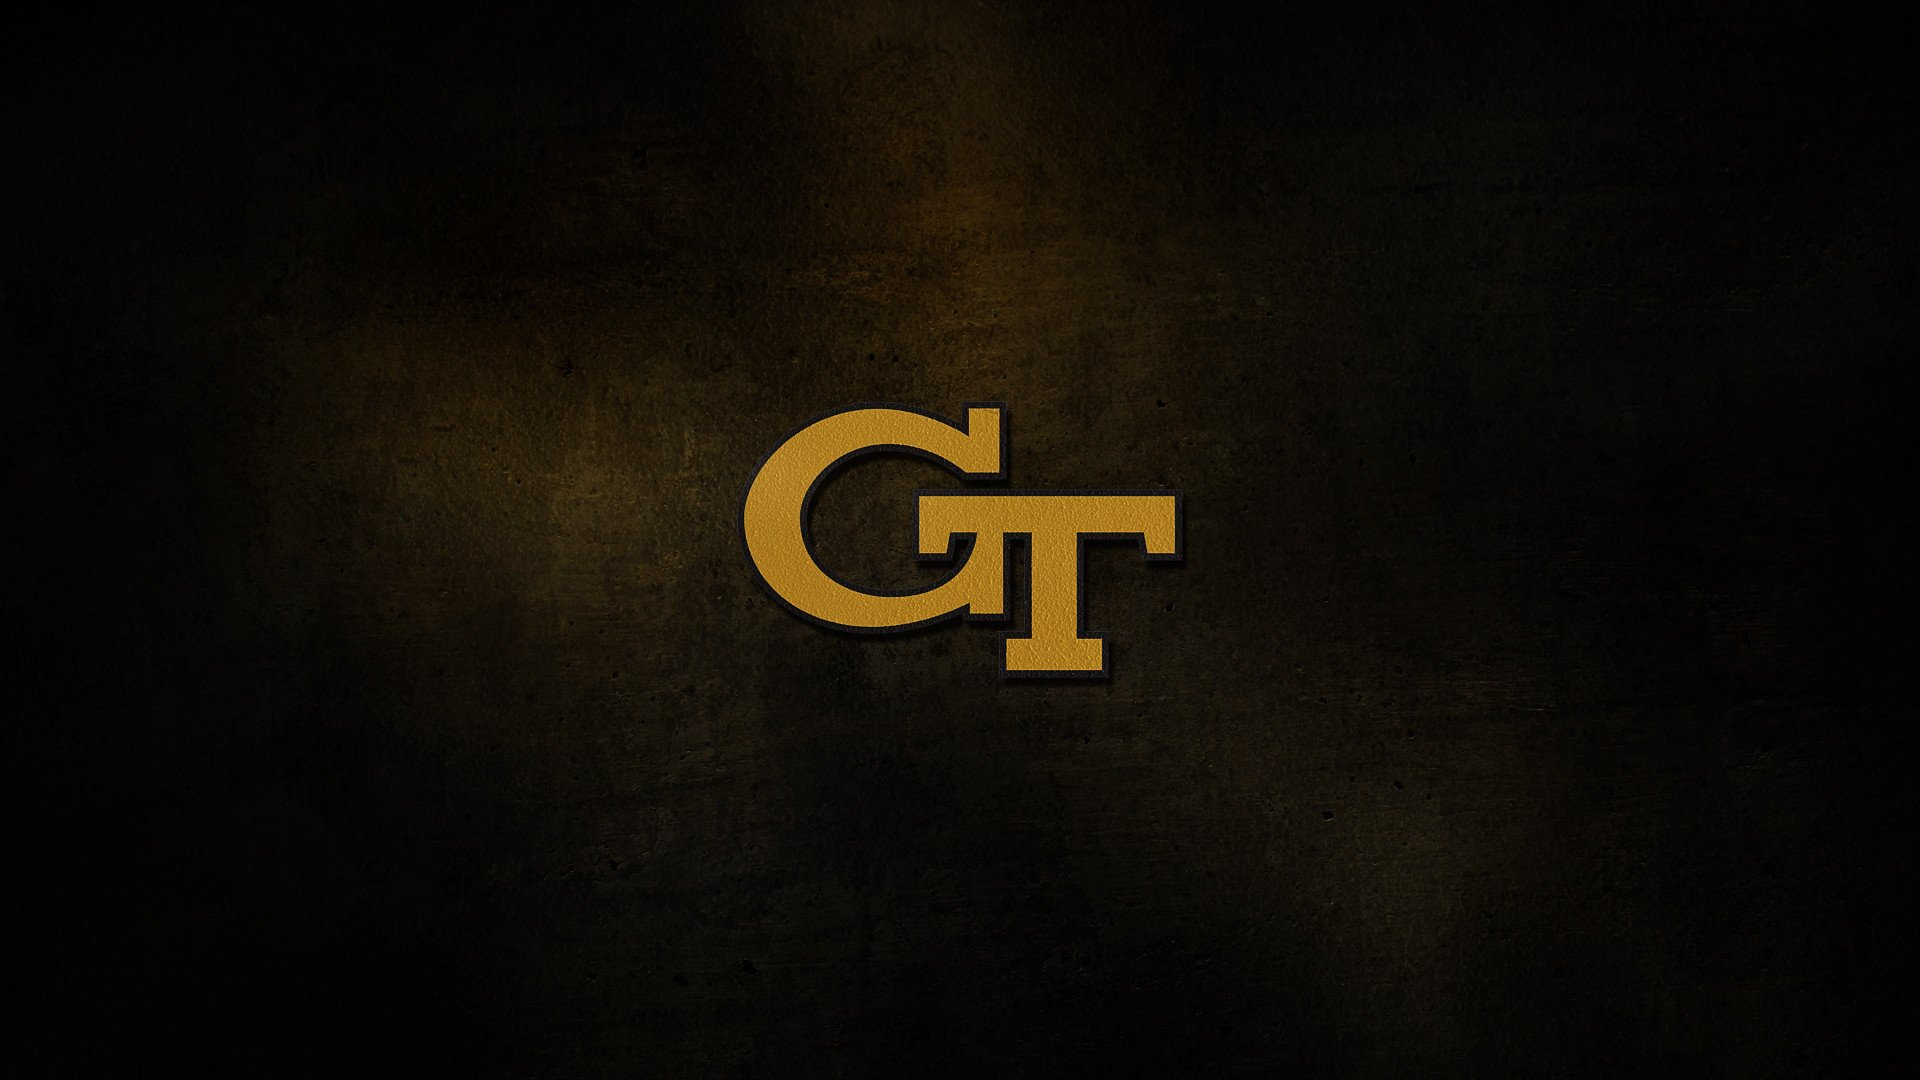 GEORGIA TECH Yellow Jackets college football wallpaper background 1920x1080